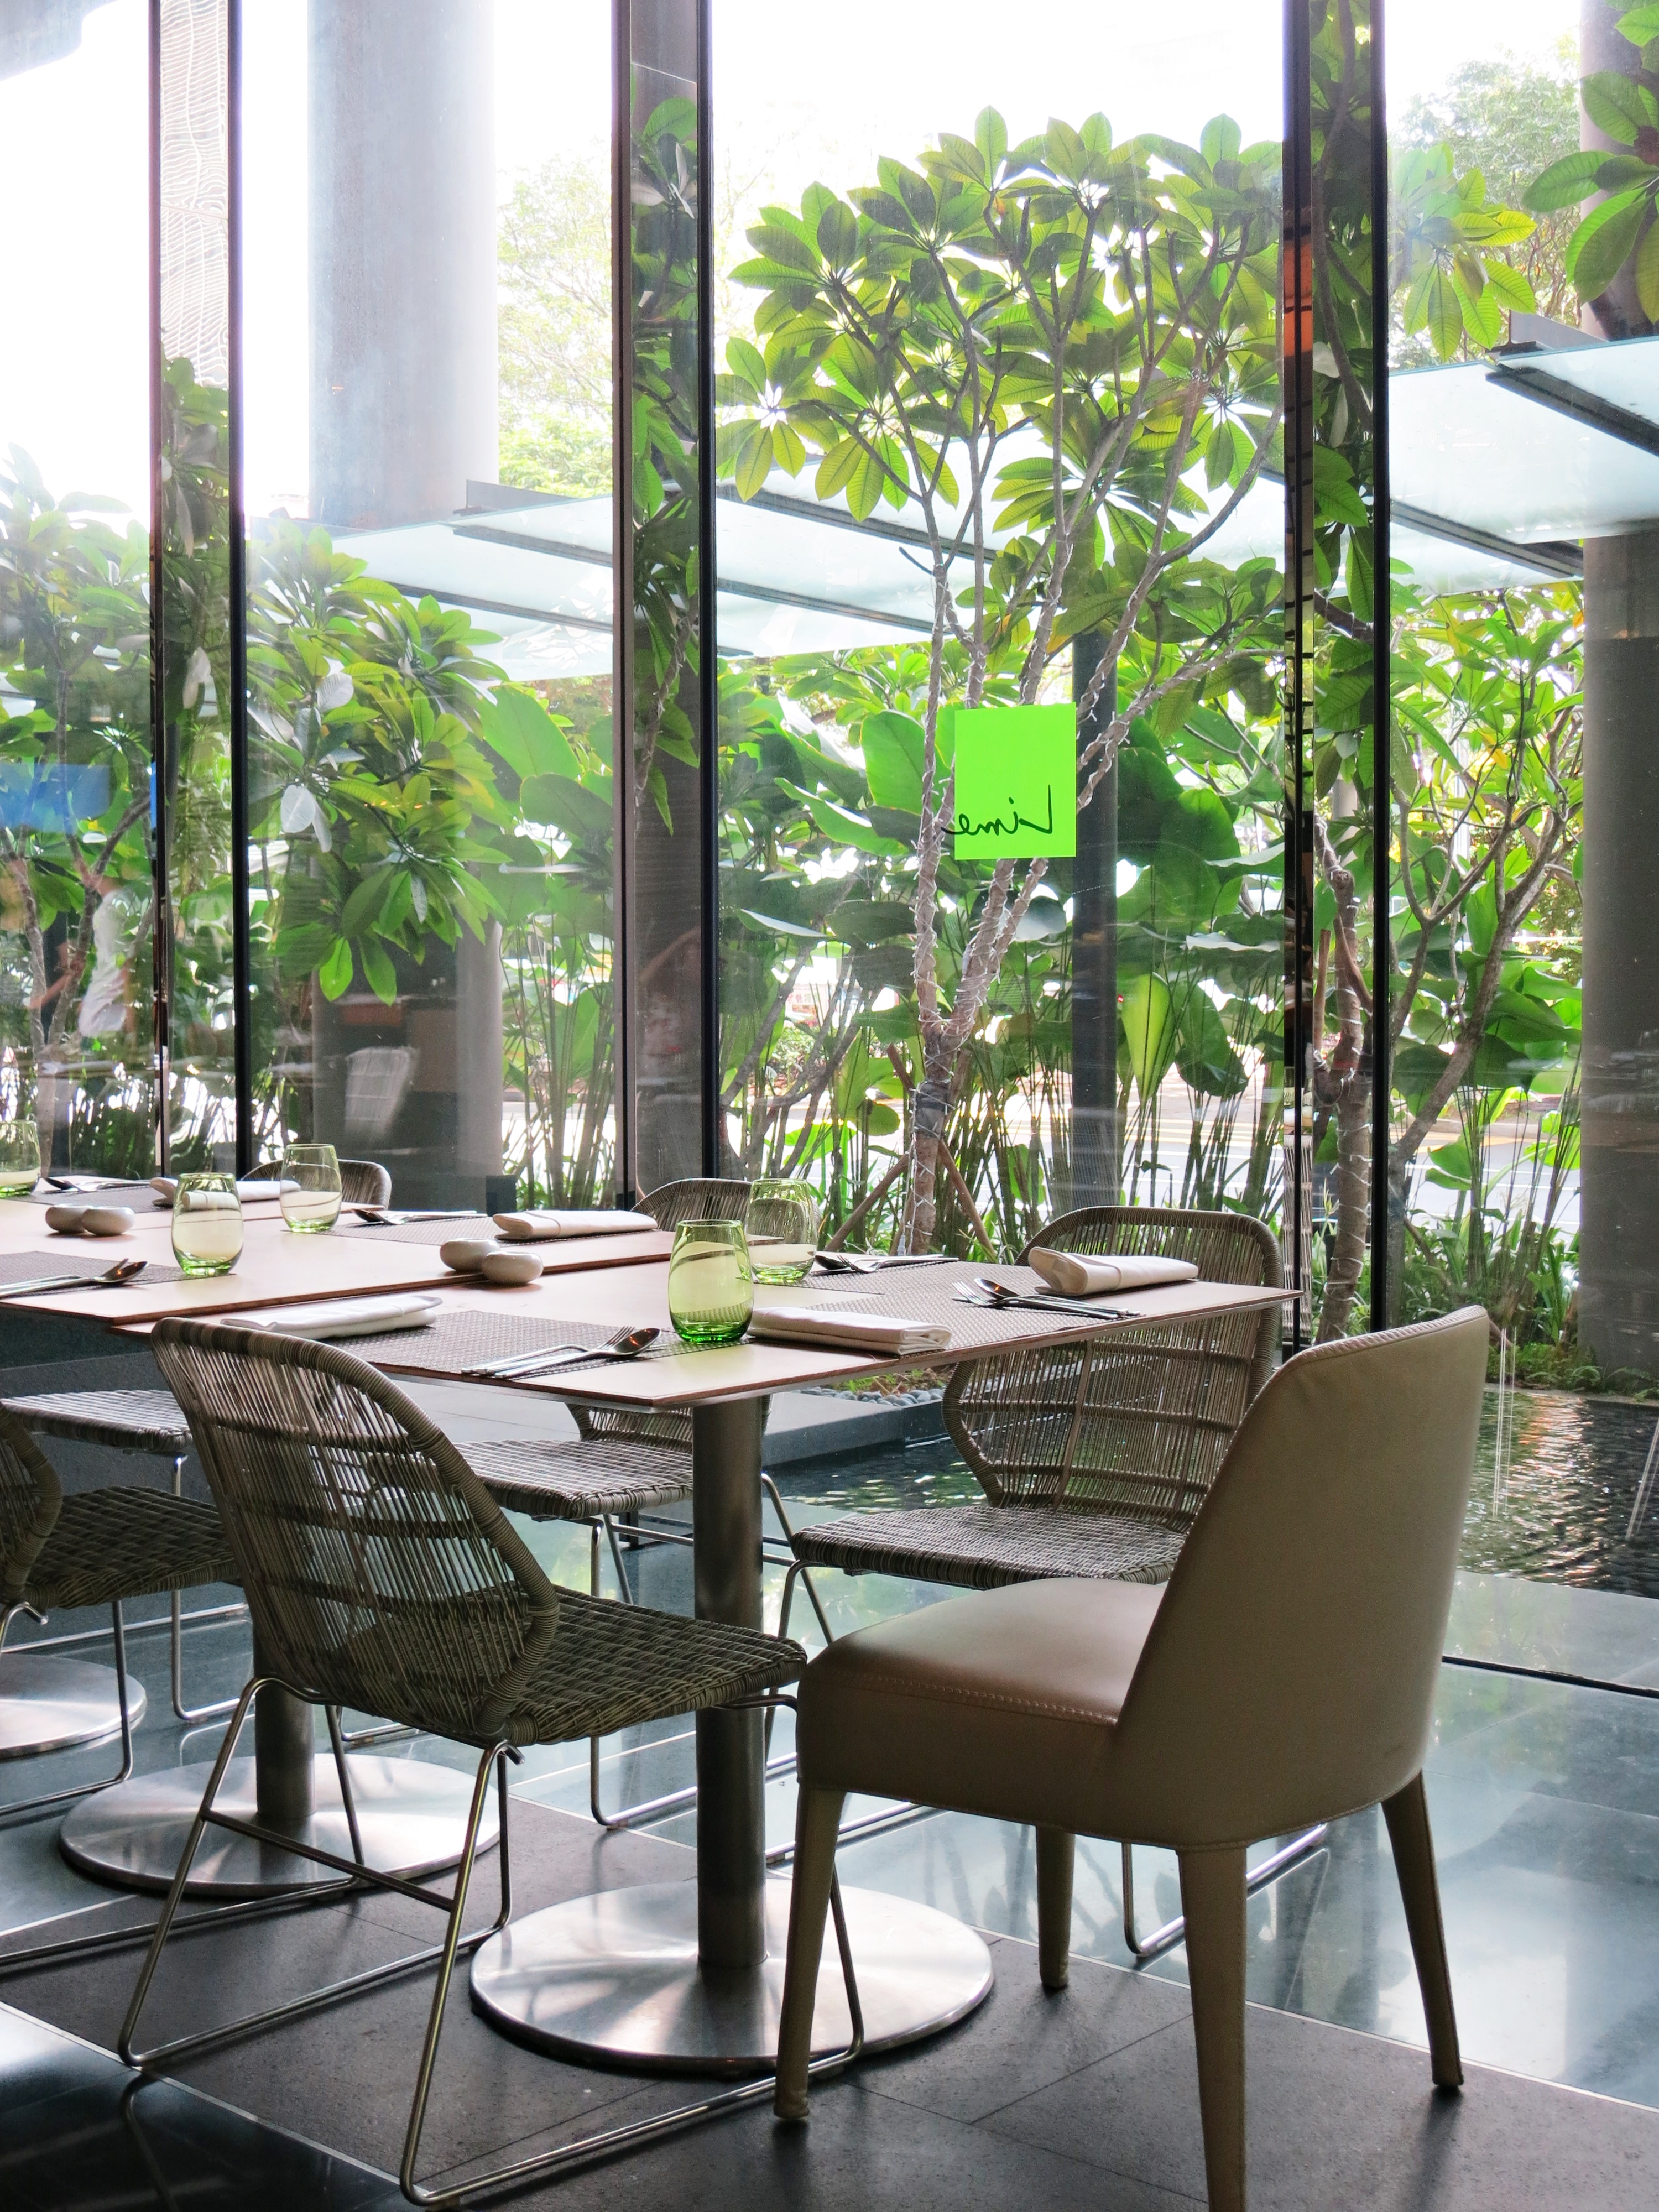 Look At All The Lovely Floor To Ceiling Windows Letting In Gorgeous Natural Lighting Also Setting Was Very Comfortable And Welcoming